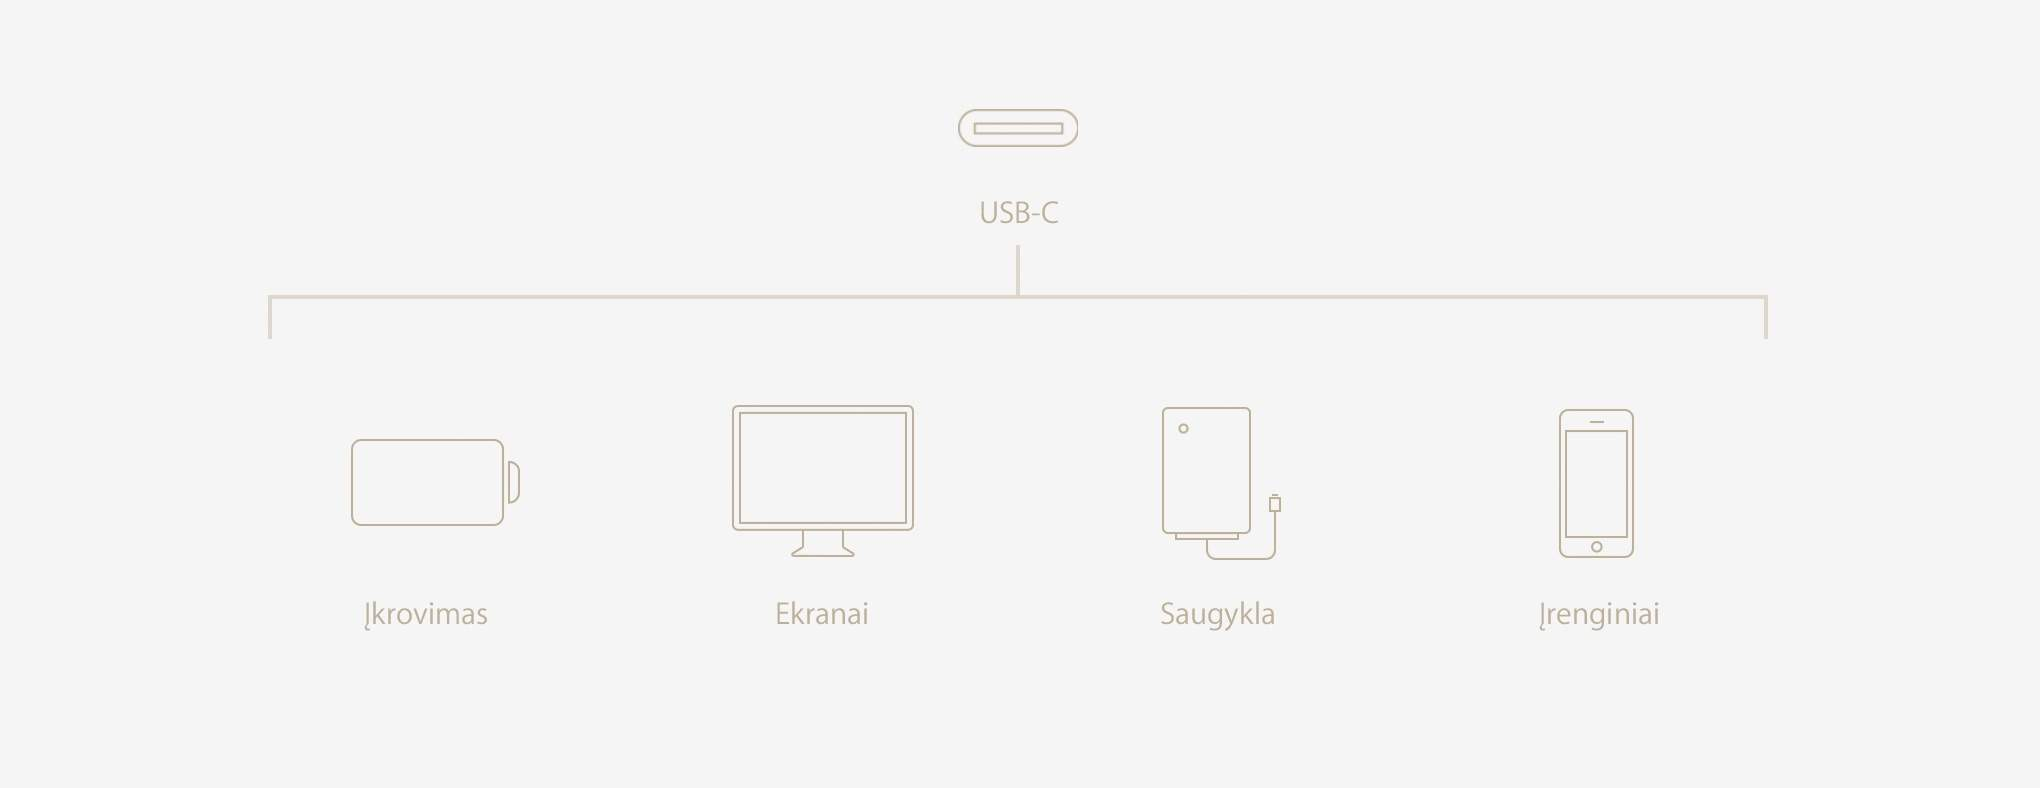 MacBook USB-C setup